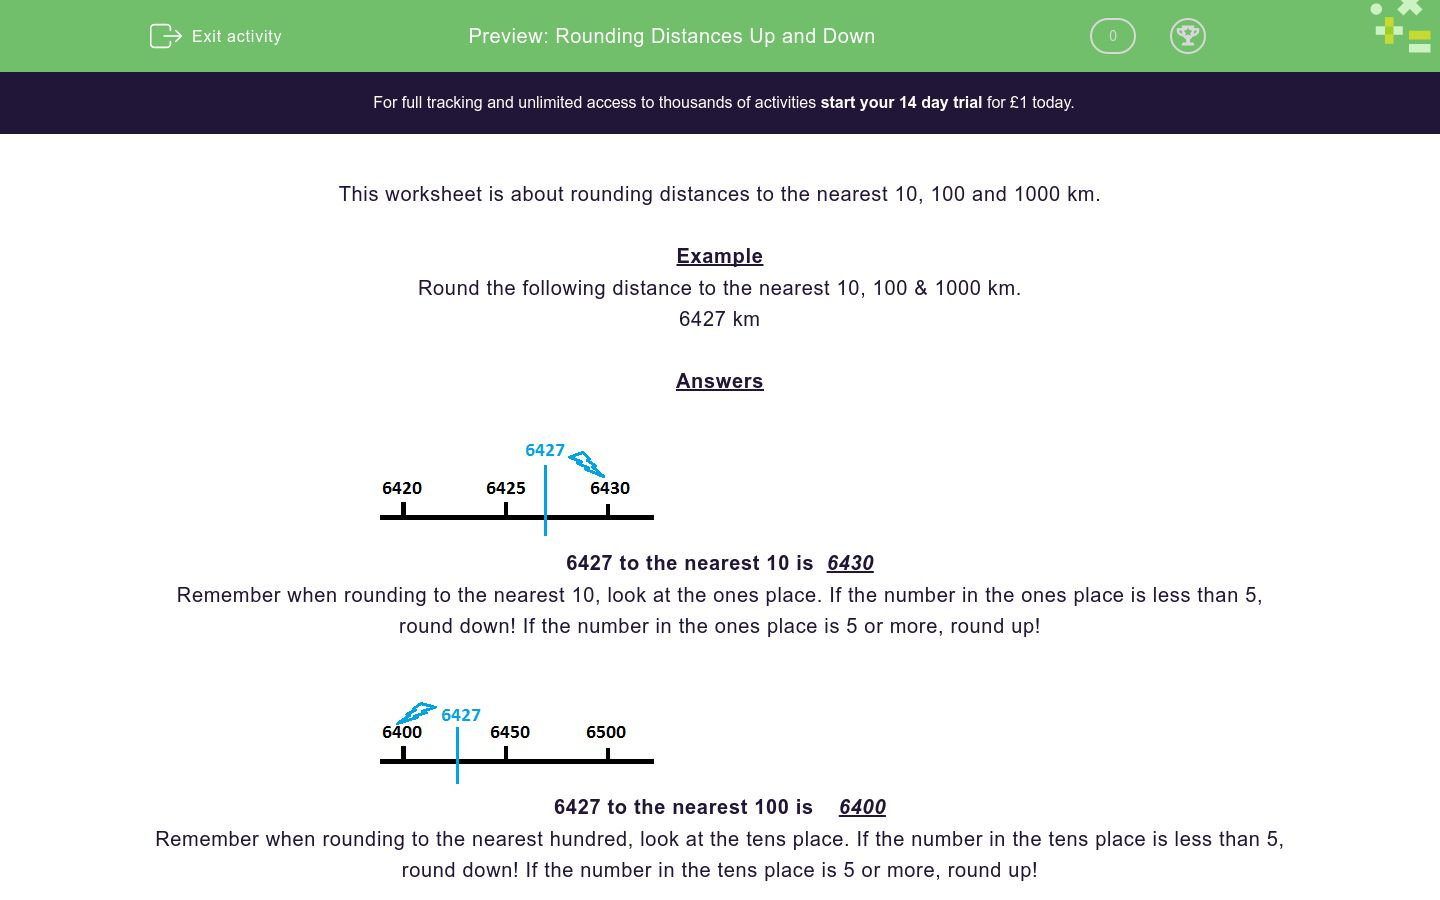 'Rounding Distances Up and Down' worksheet